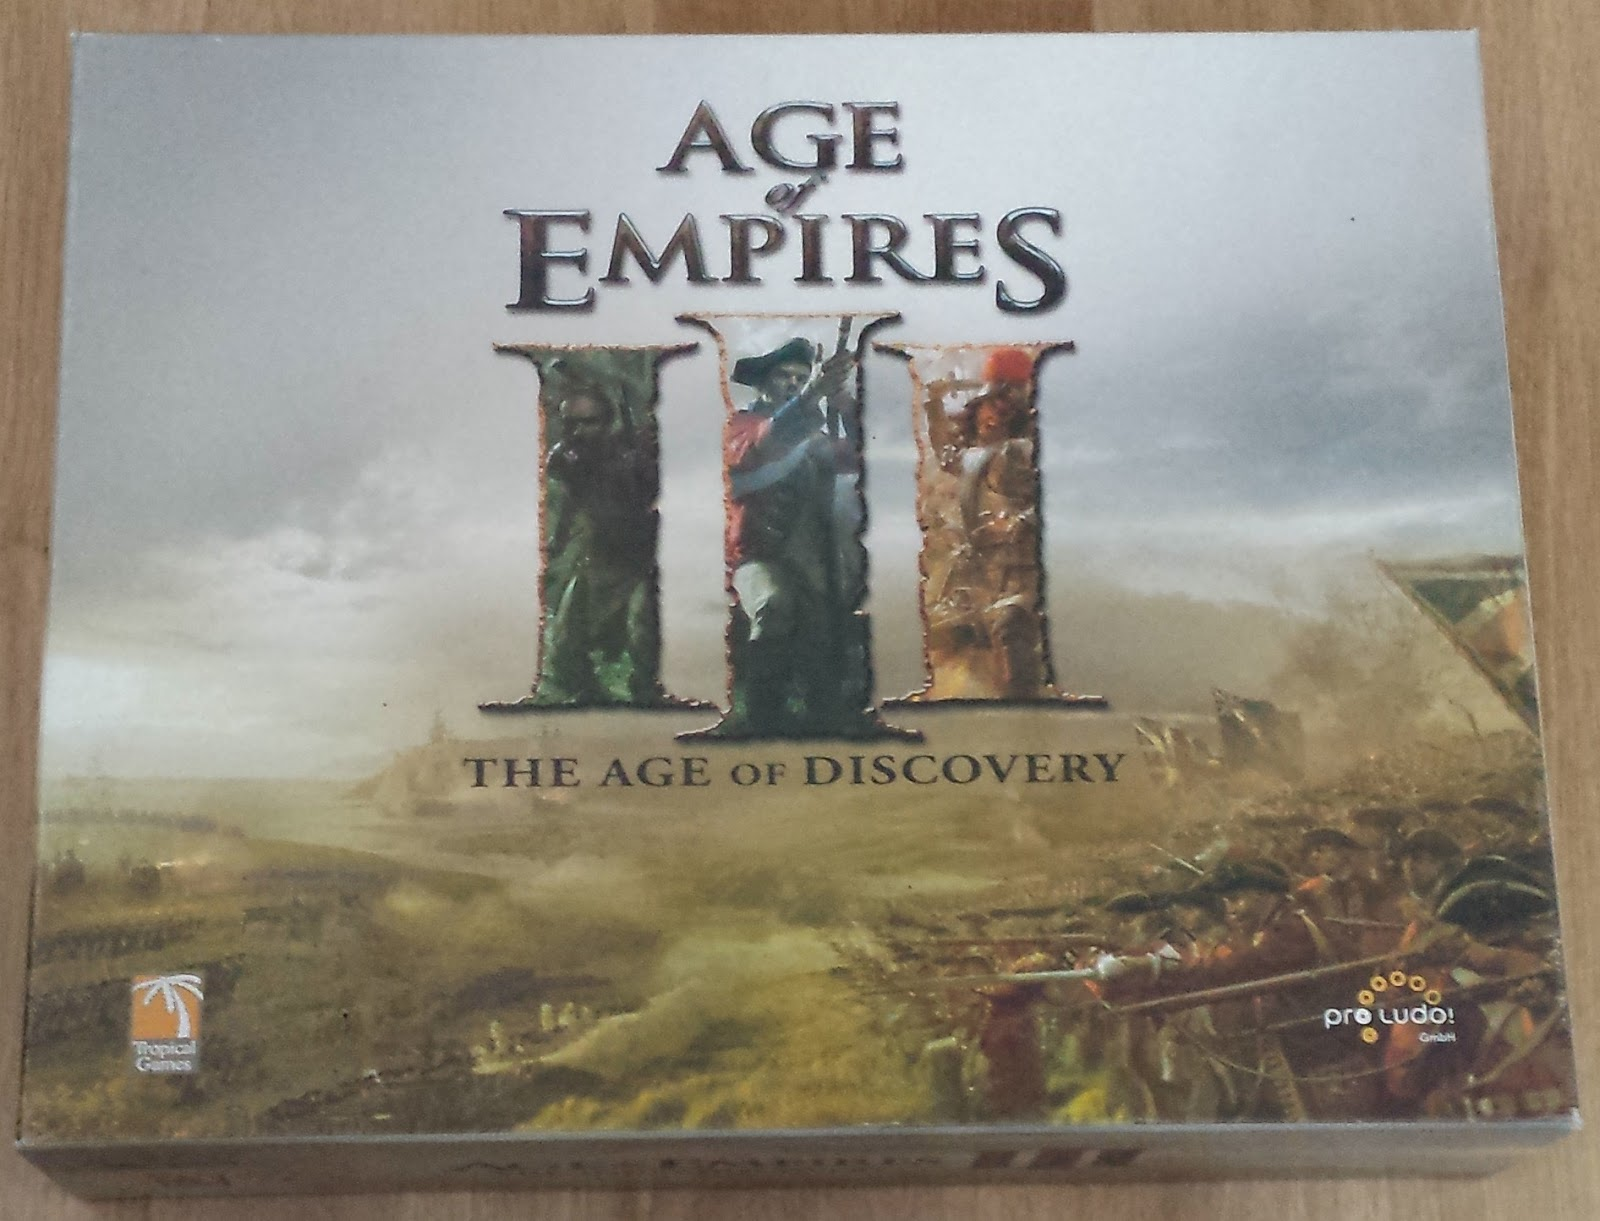 Age Of Empires Iii Is Reborn As Empires Age Of Discovery: Age Of Empires III/ Empires: Age Of Discovery